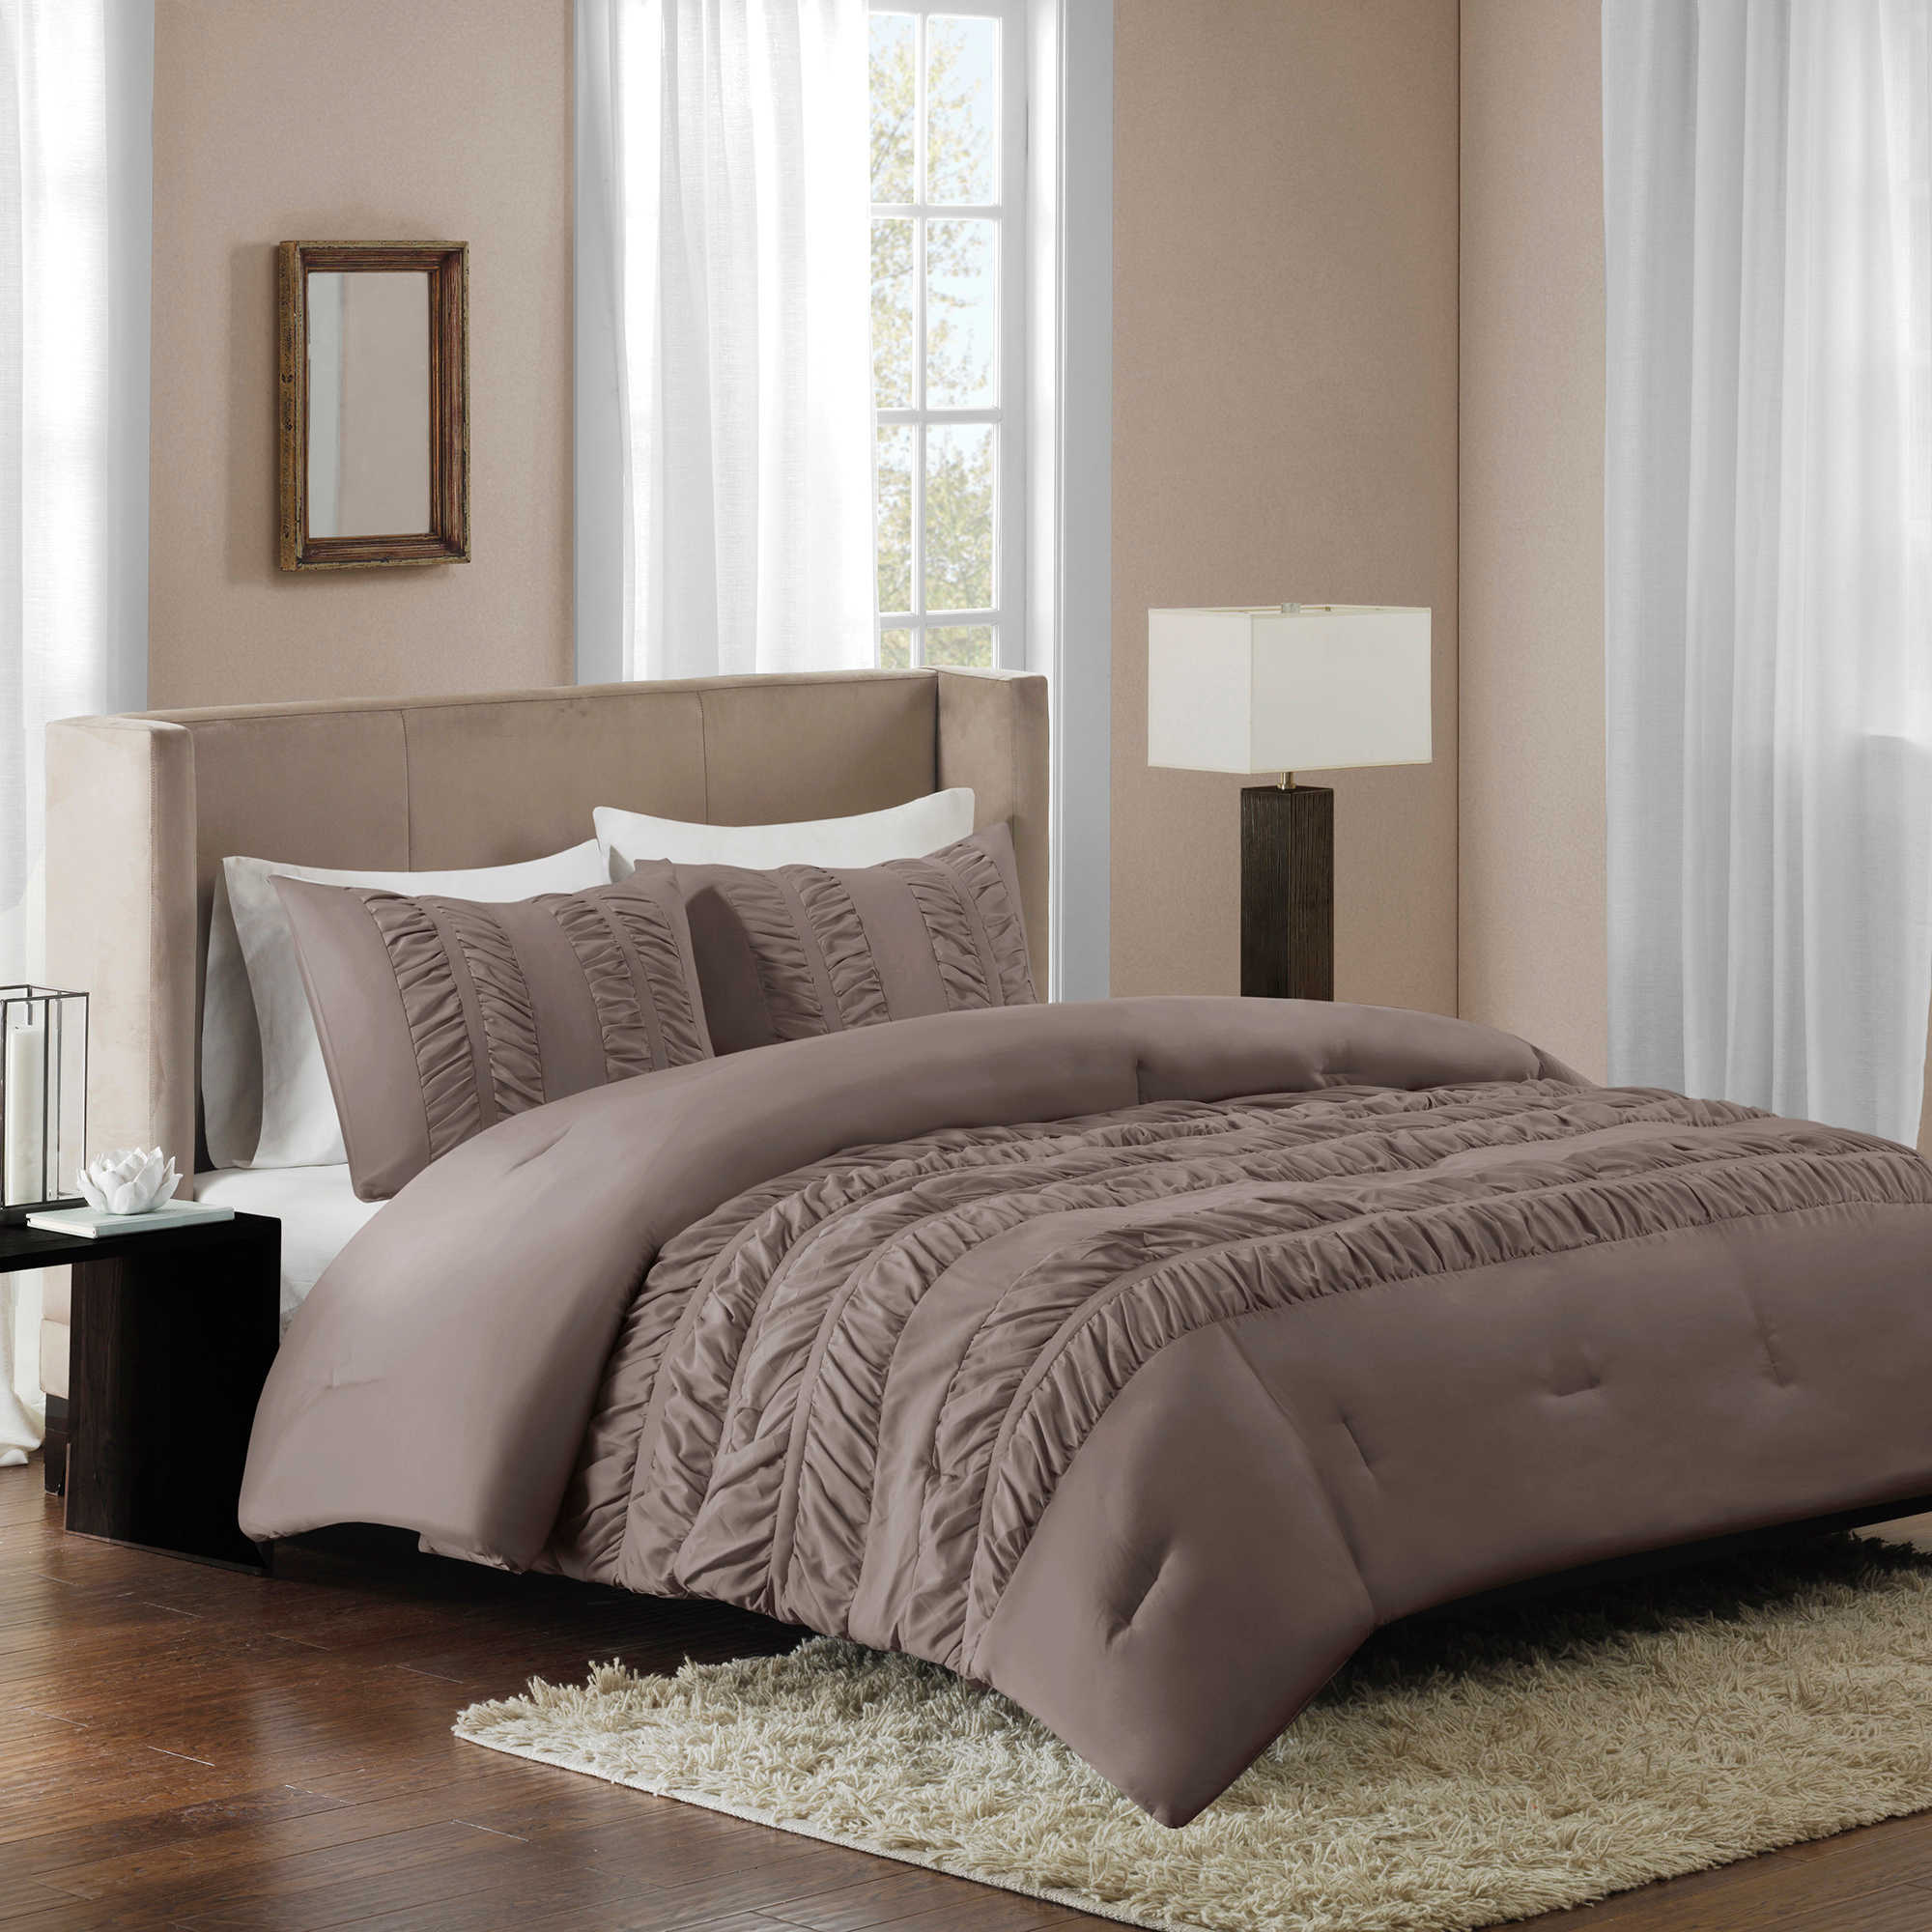 Regency Bedroom Furniture Regency Height Deanna Ruched Comforter Set Bed Bath Beyond